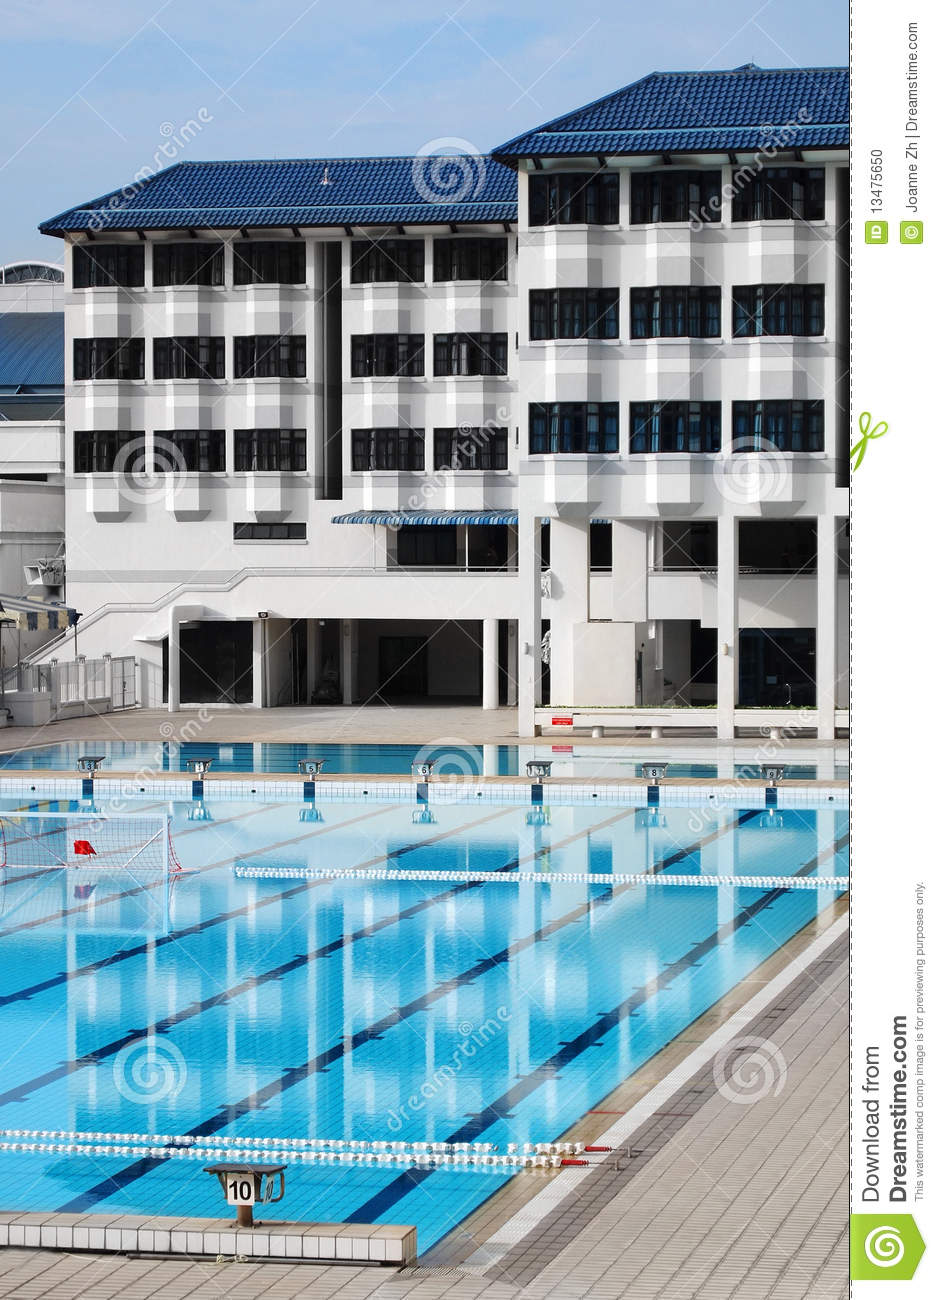 Pension d 39 cole avec la piscine photo stock image 13475650 for Piscine xs prix